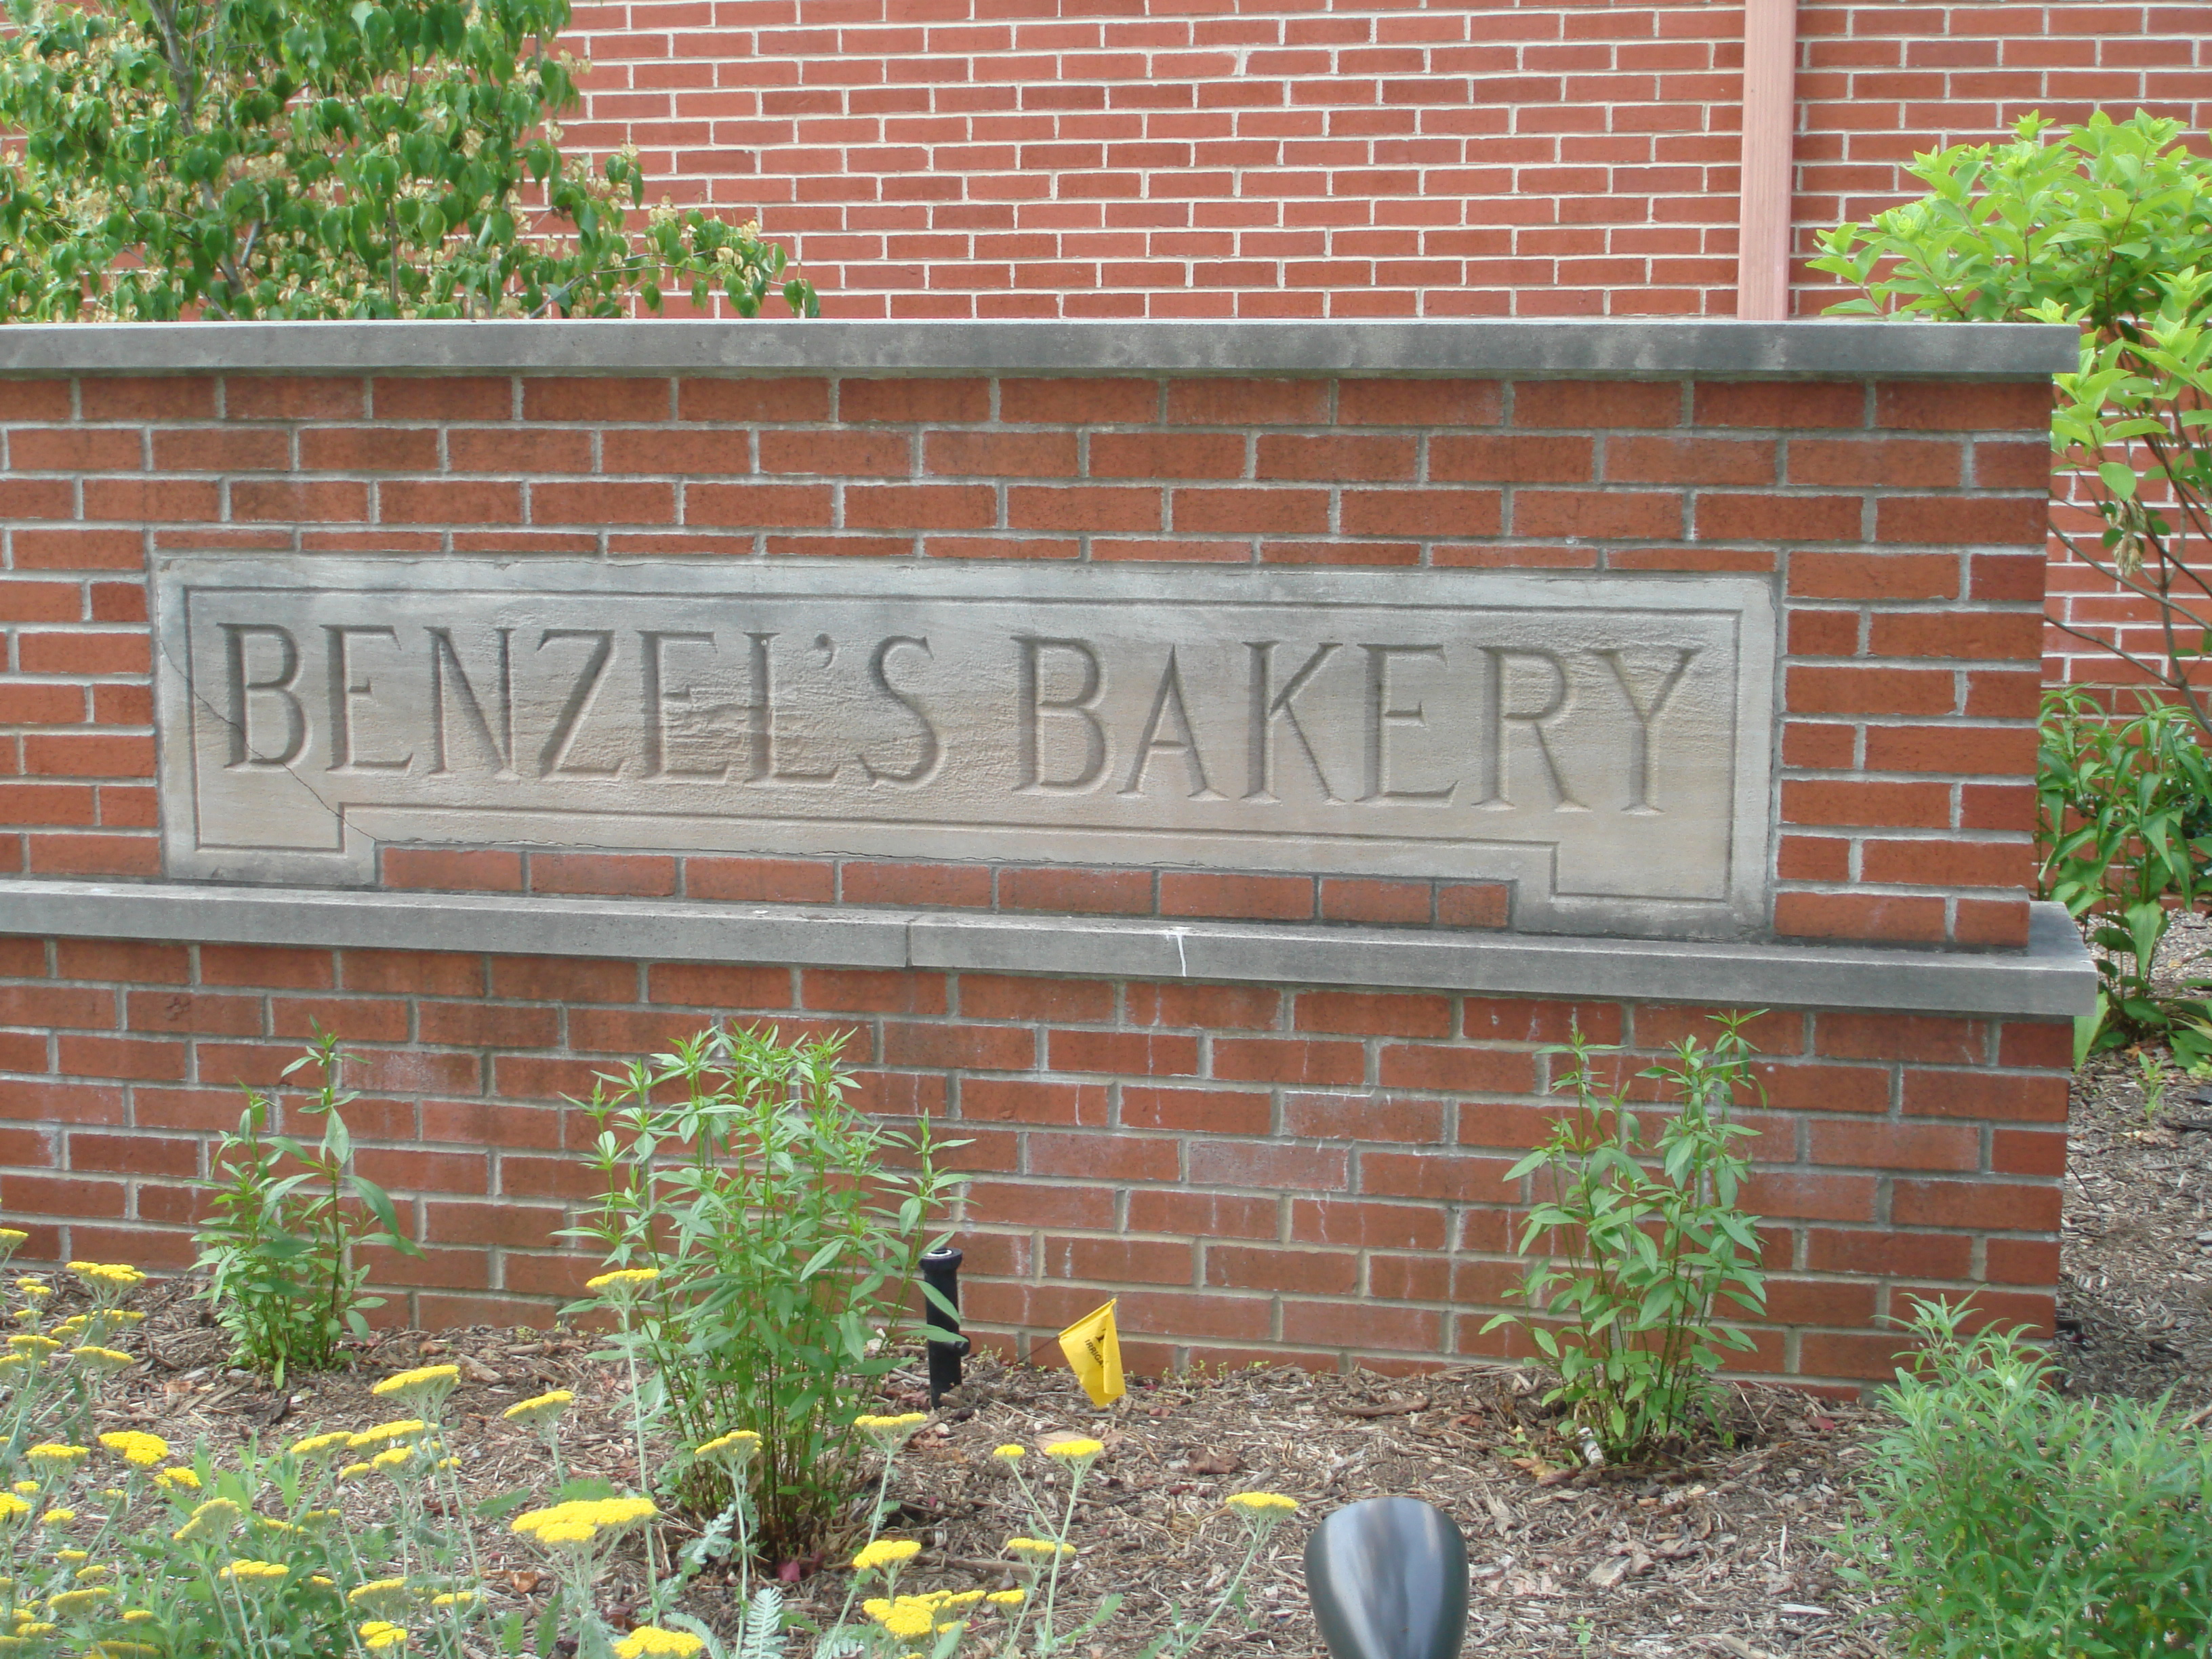 Benzel's Bakery